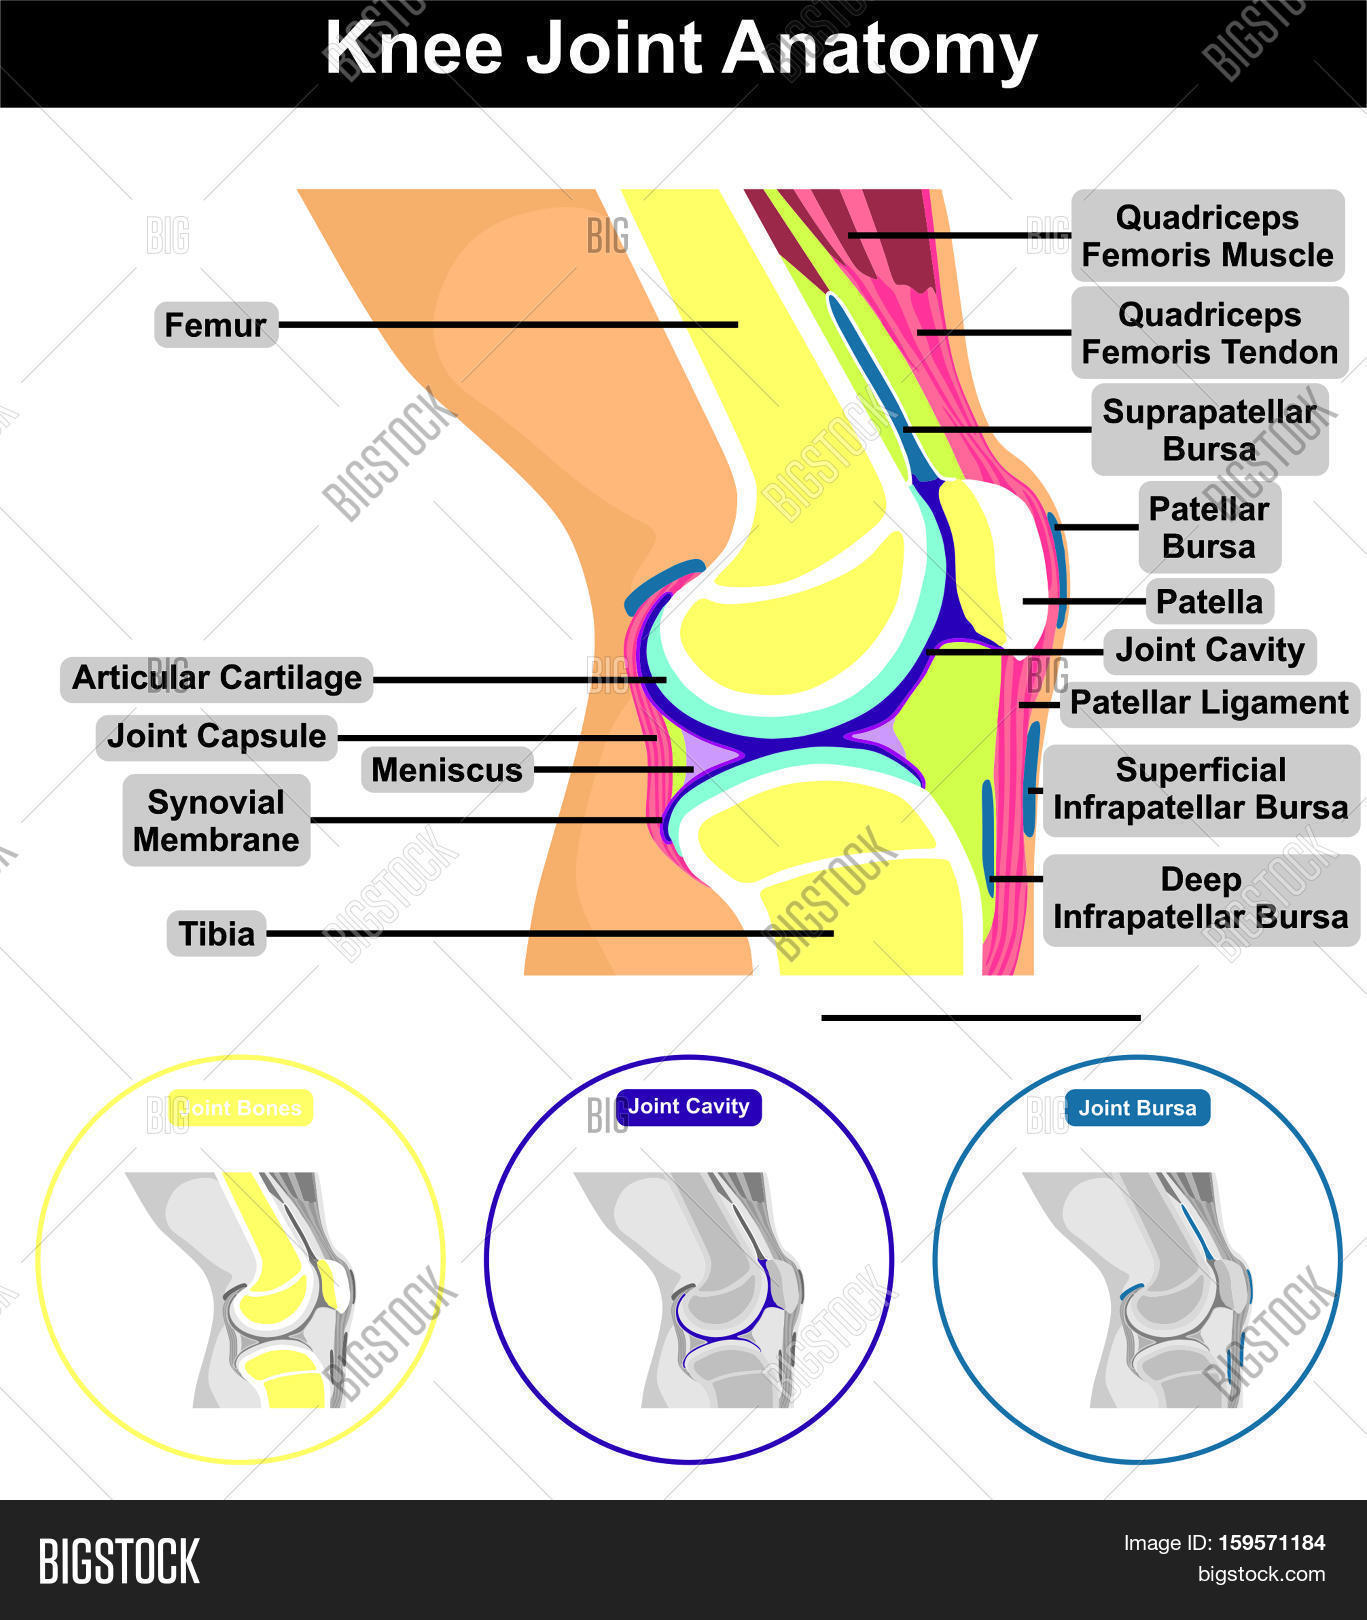 Human knee joint image photo free trial bigstock human knee joint anatomy structure and contents including bones femur tibia patella cavity muscle tendon capsule ccuart Choice Image